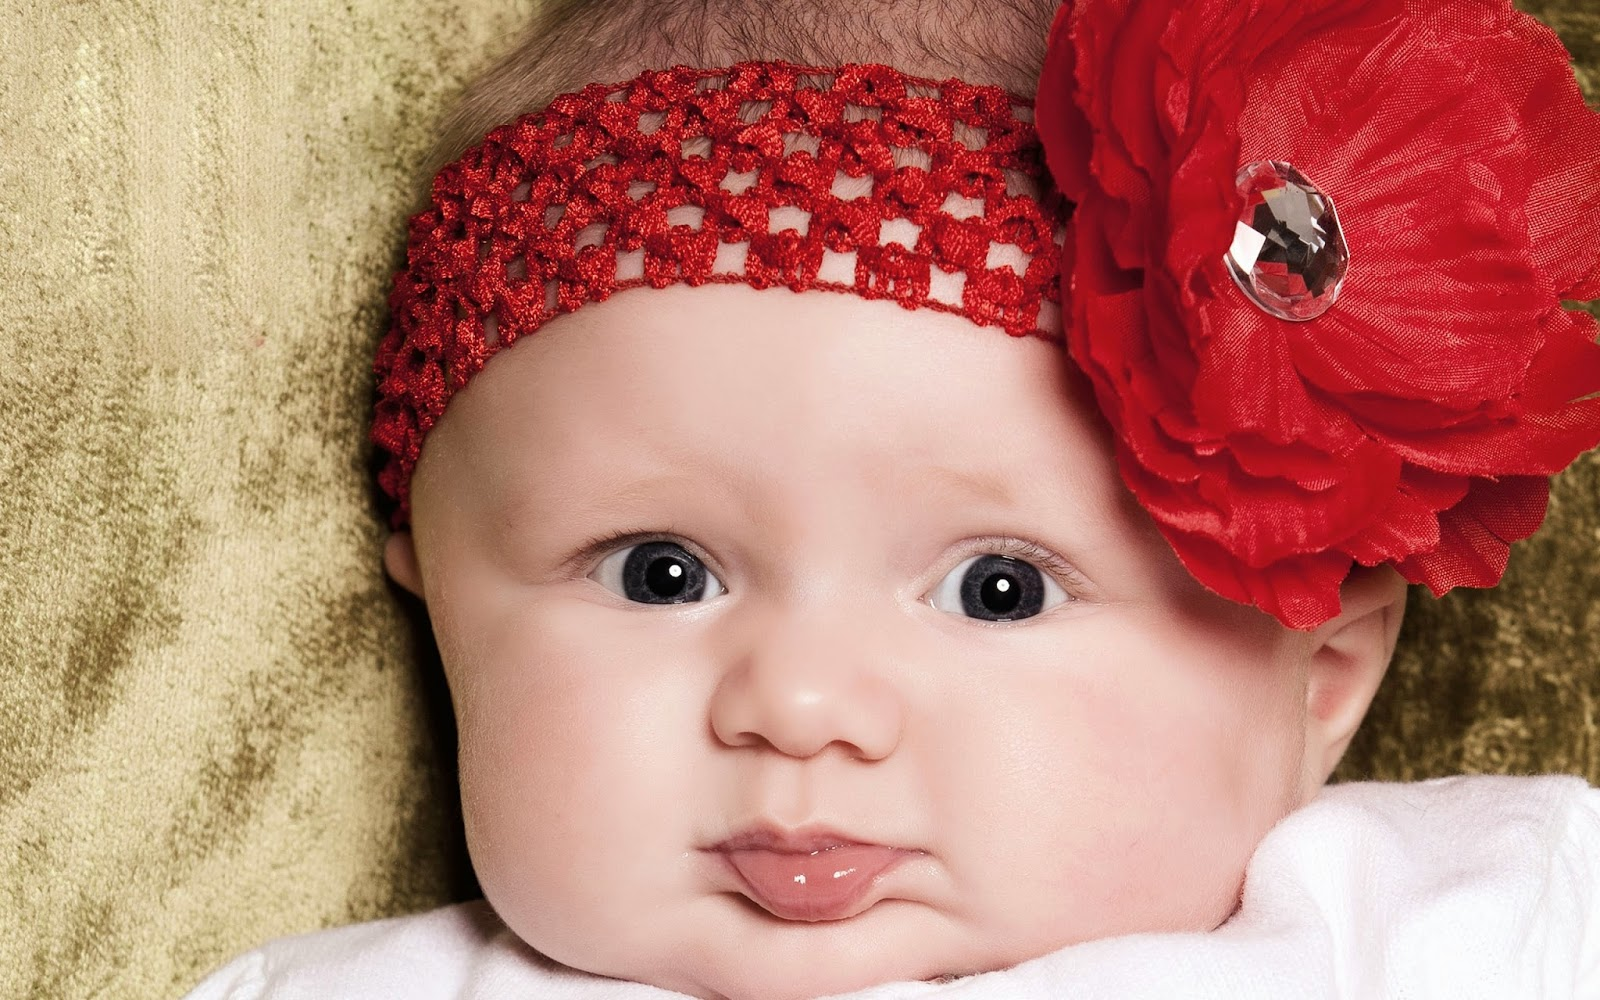 Free Download Beautiful Cute Baby Wallpapers Most Beautiful Places In The 1600x1000 For Your Desktop Mobile Tablet Explore 18 Beautiful Beby Wallpaper Beautiful Beby Wallpaper Beautiful Wallpaper Wallpapers Beautiful